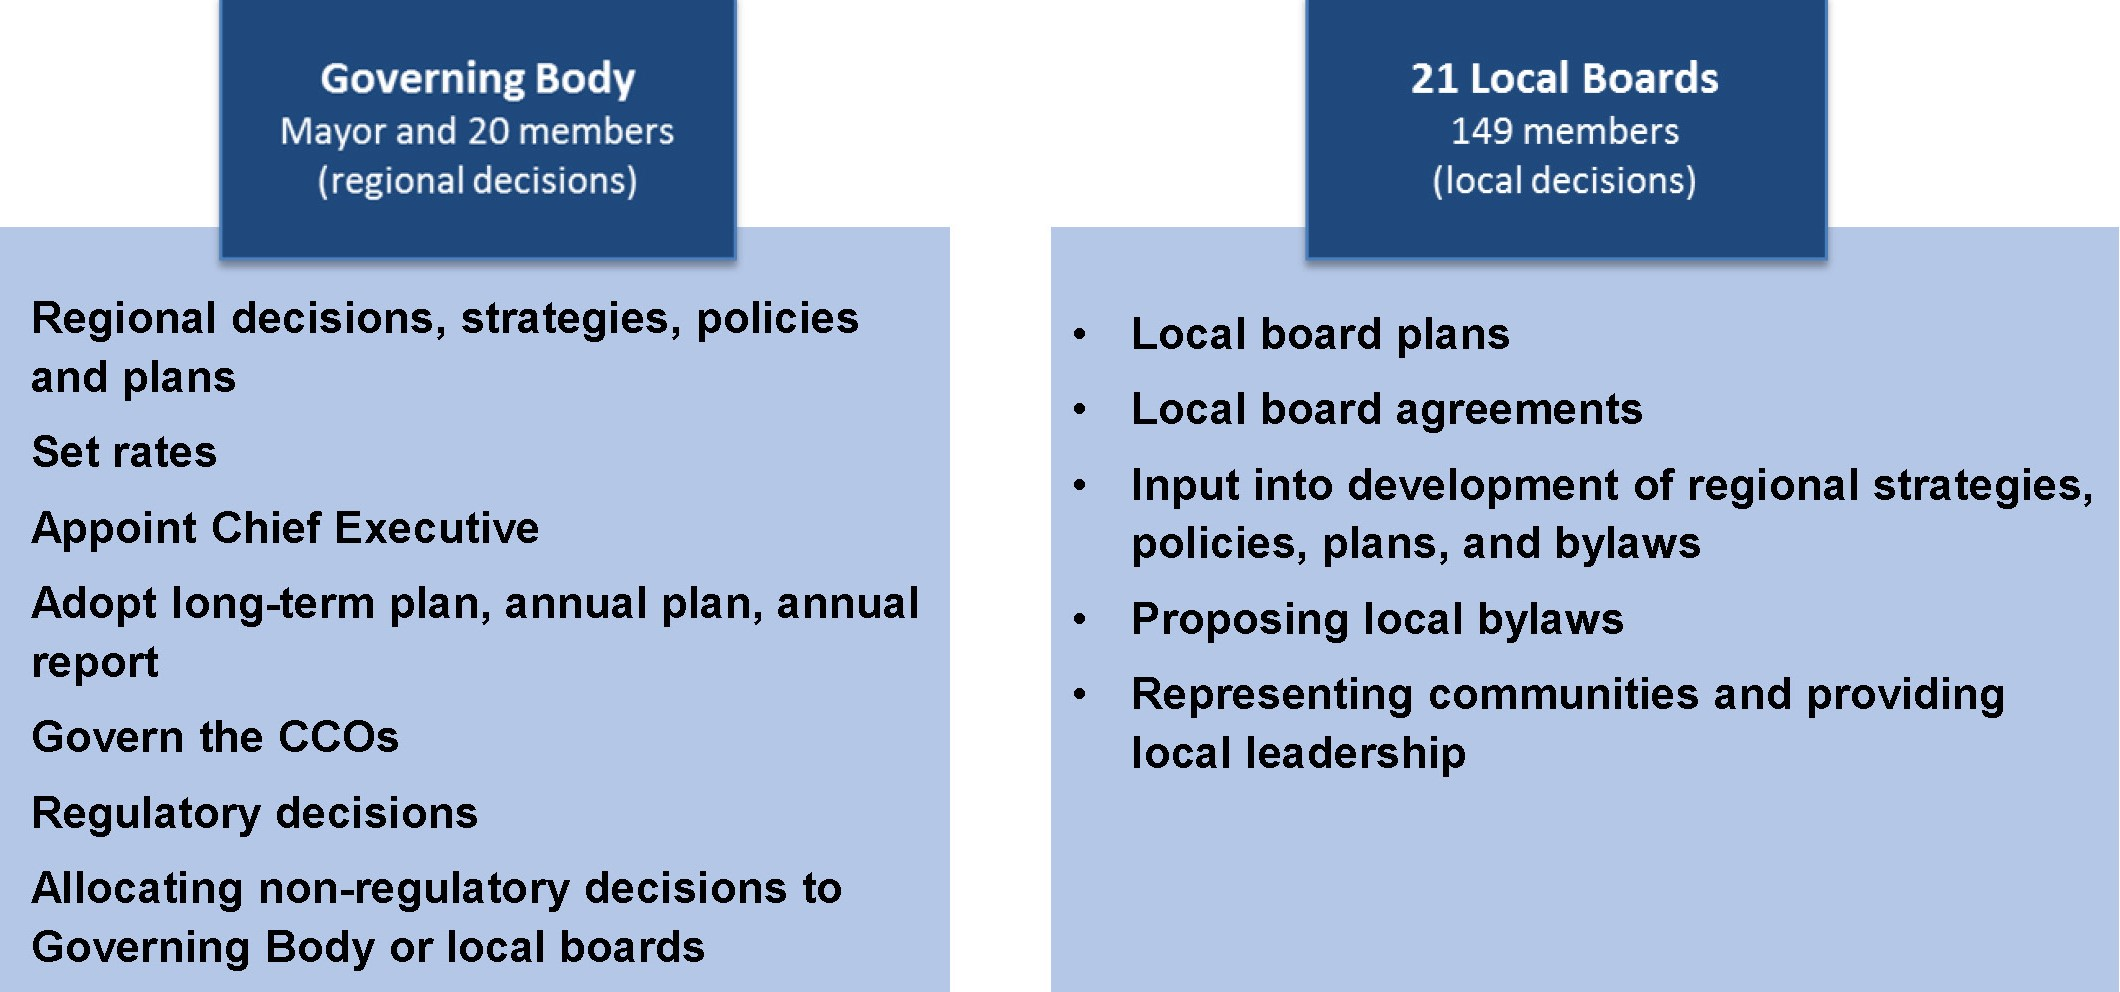 Local government is the means by which communities make democratic decisions about the way in which their towns, cities and regions work and how they will develop.